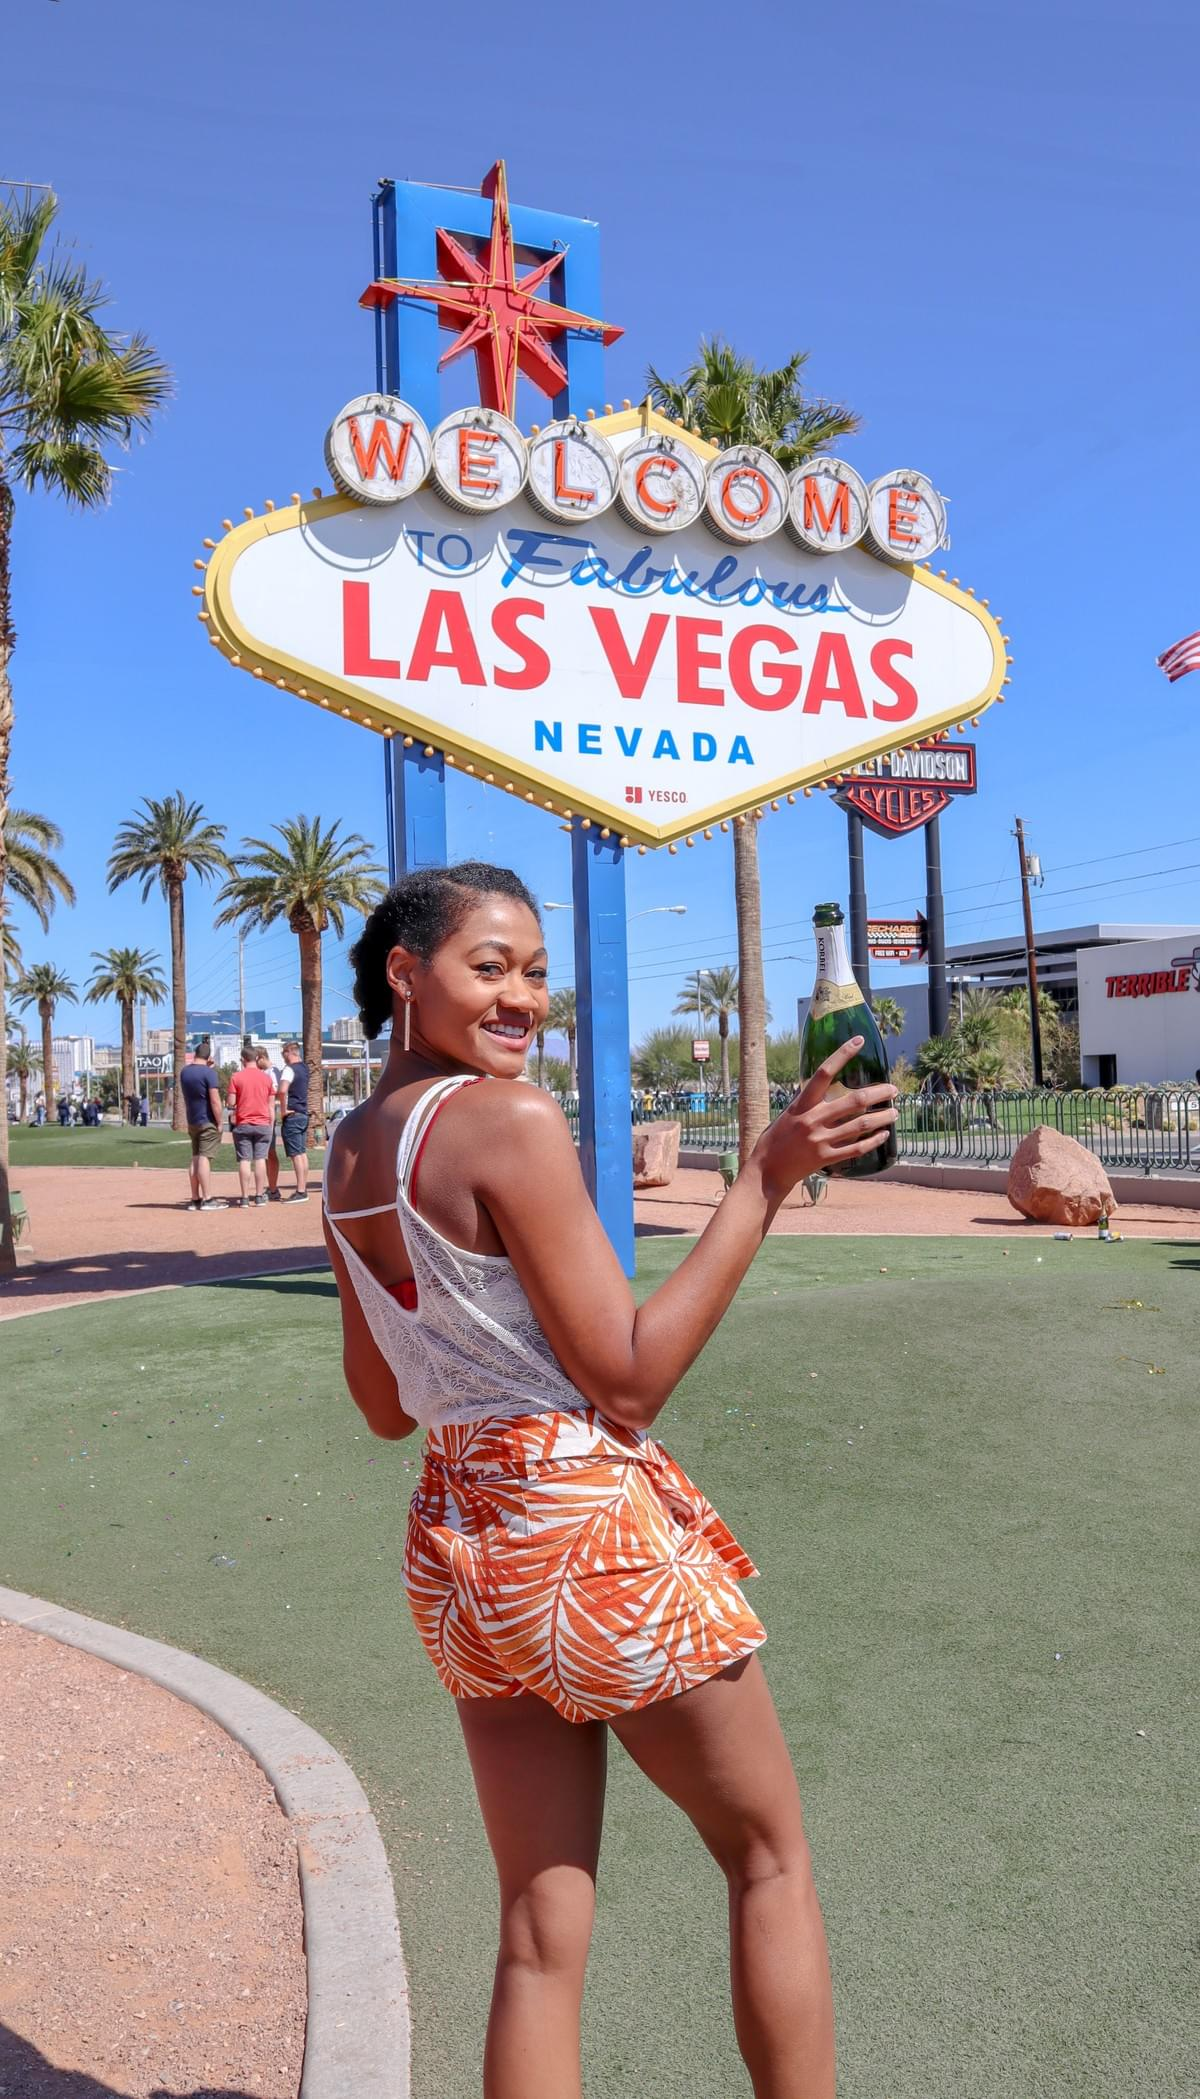 Natural hair brown black girl holding champagne bottle in front of Welcome to Las Vegas sign